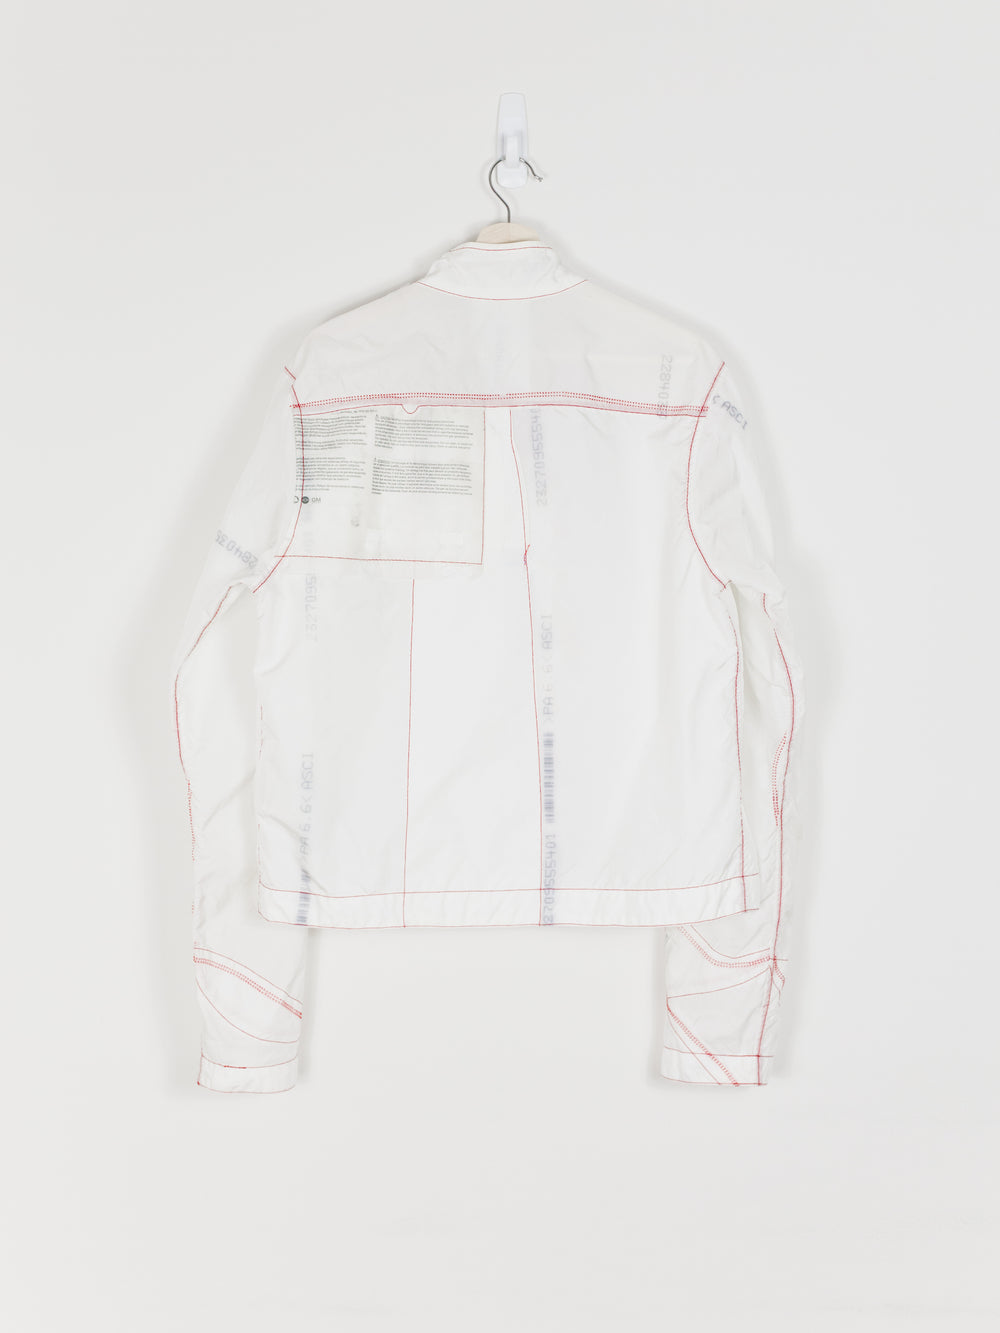 Kanghyuk SS17 (MA Collection) Foldover Recycled Airbag Jacket